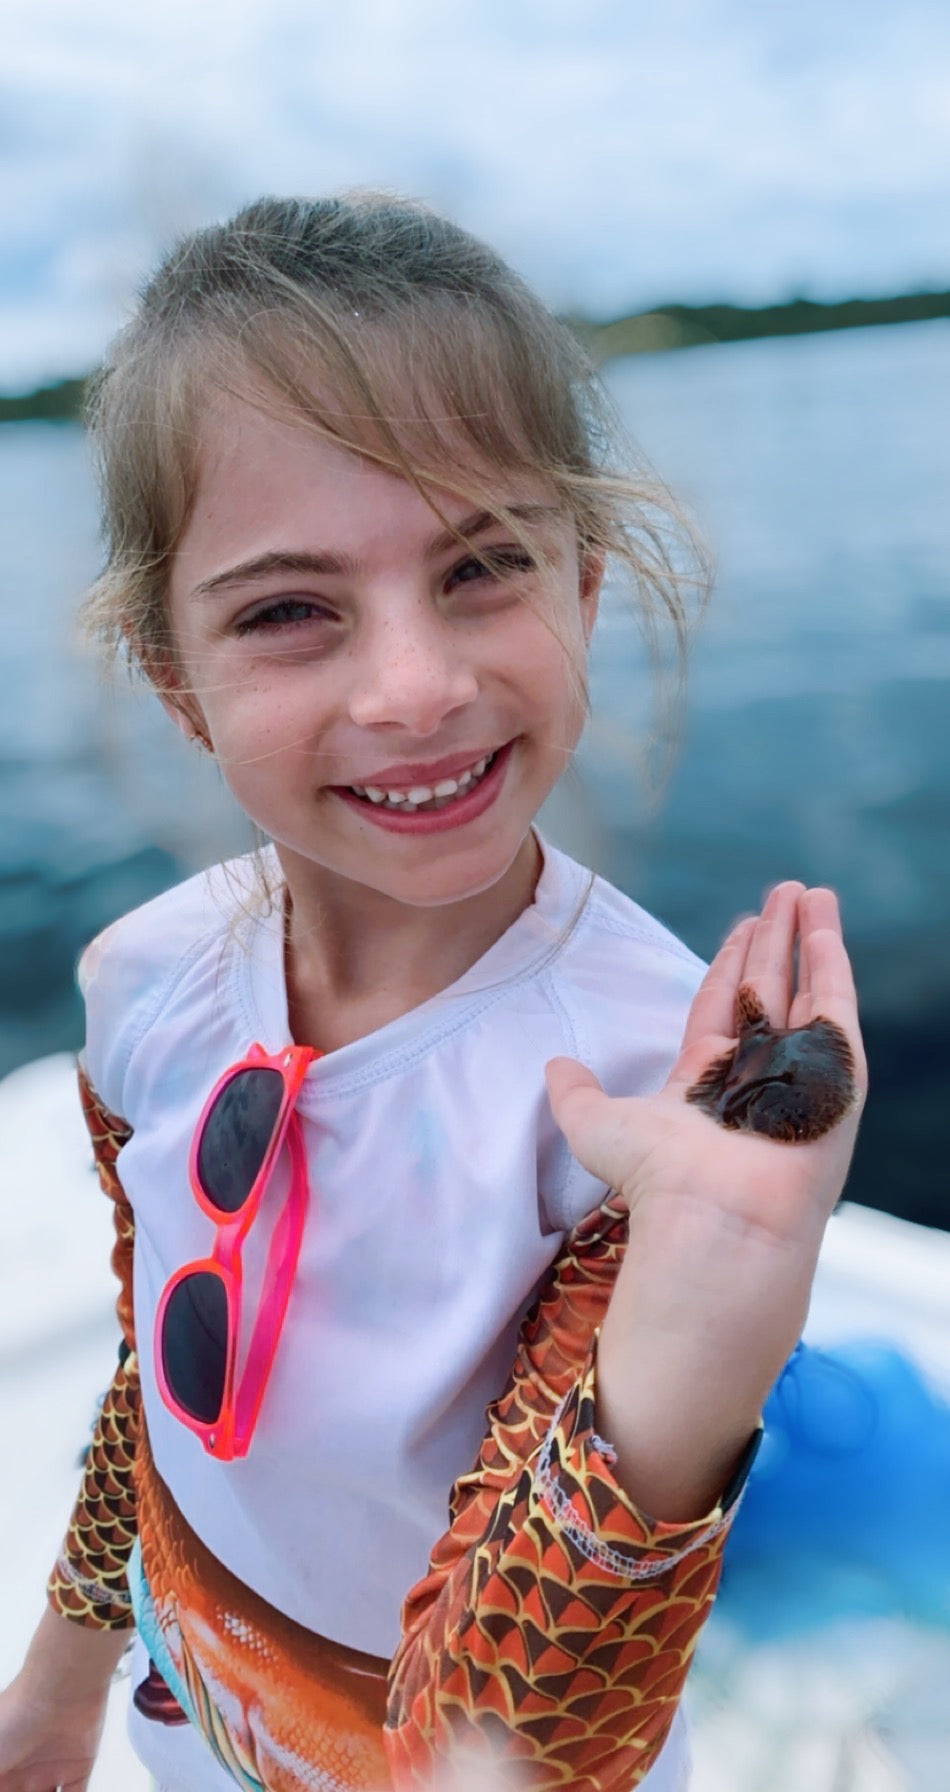 little girl holding a flounder fish. Little girl on a boat in the St. John's River in Palatka, Florida holding a flounder.